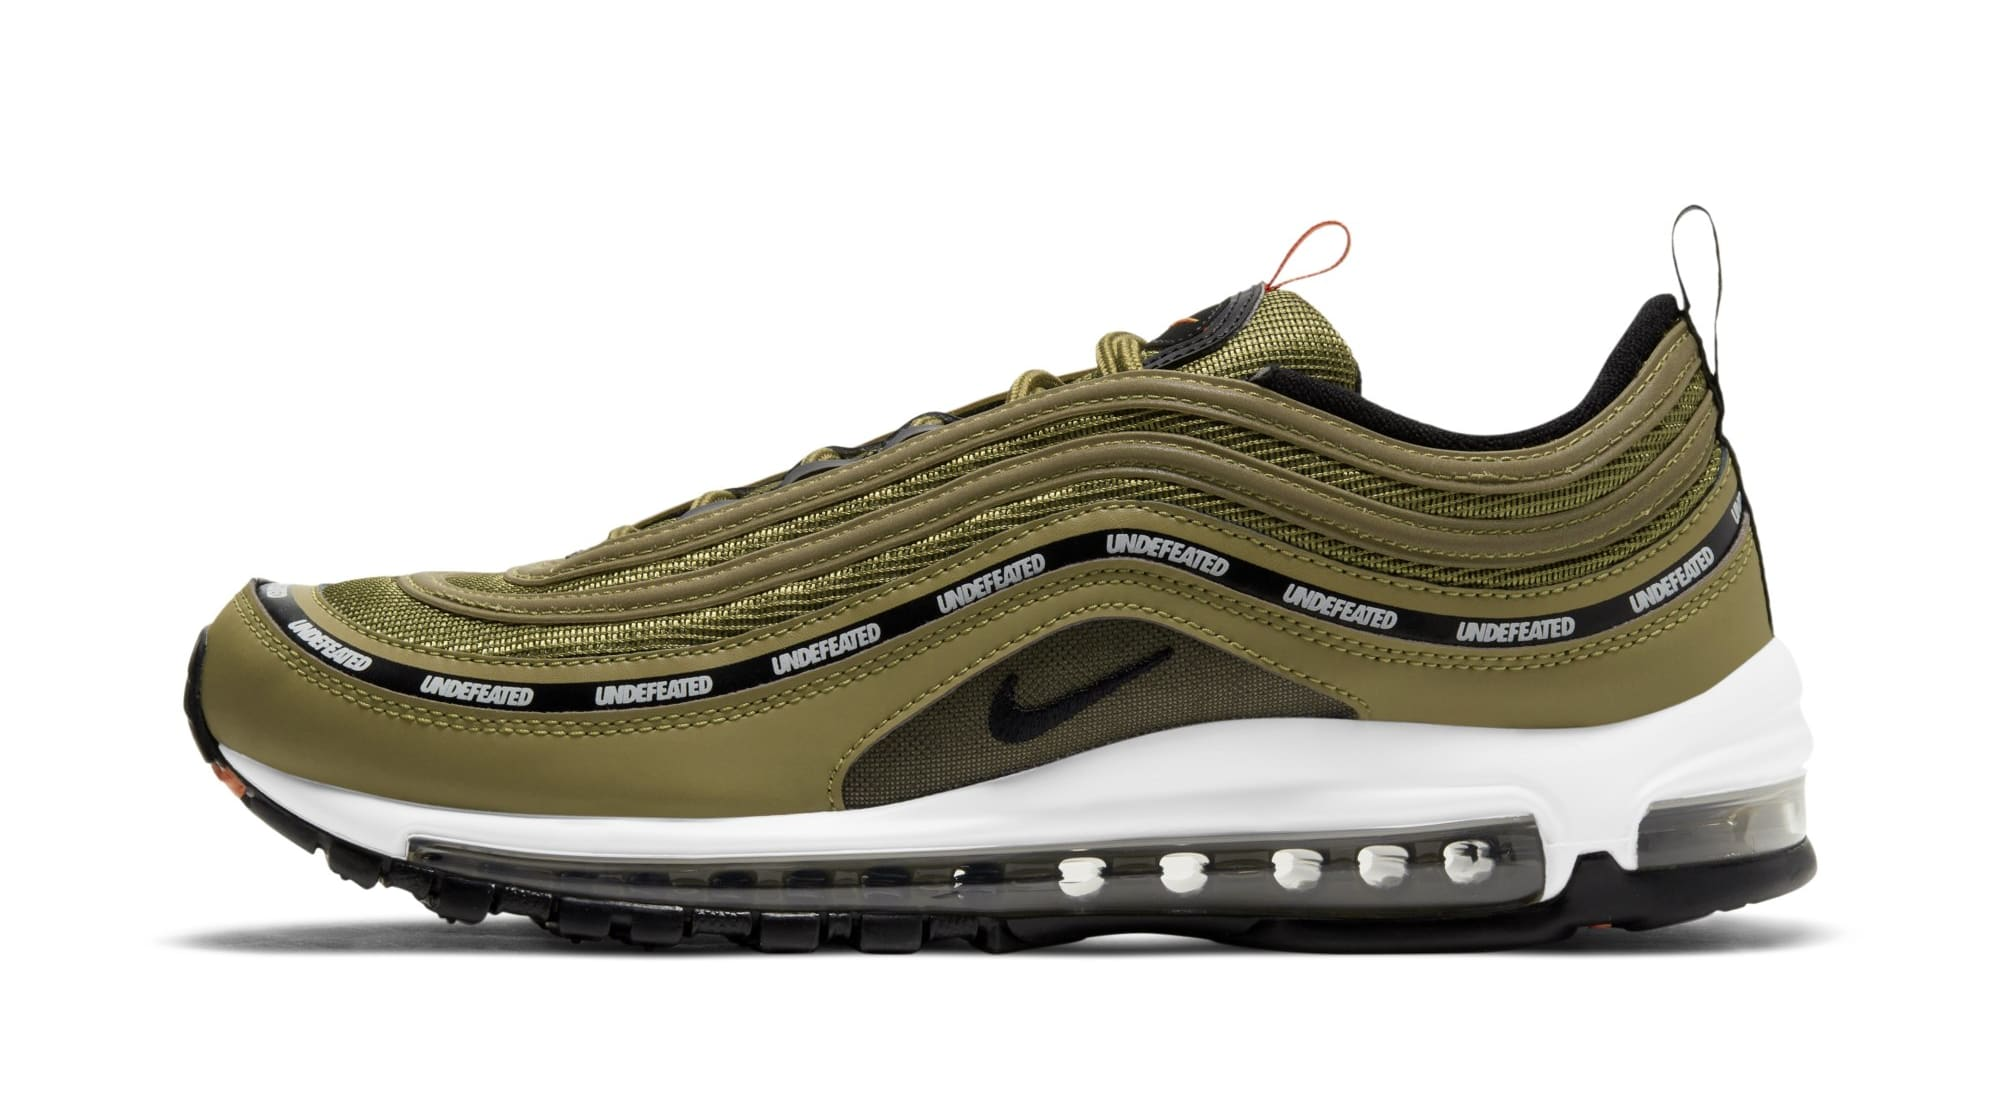 Undefeated x Nike Air Max 97 'Militia Green' DC4830-300 (Lateral)